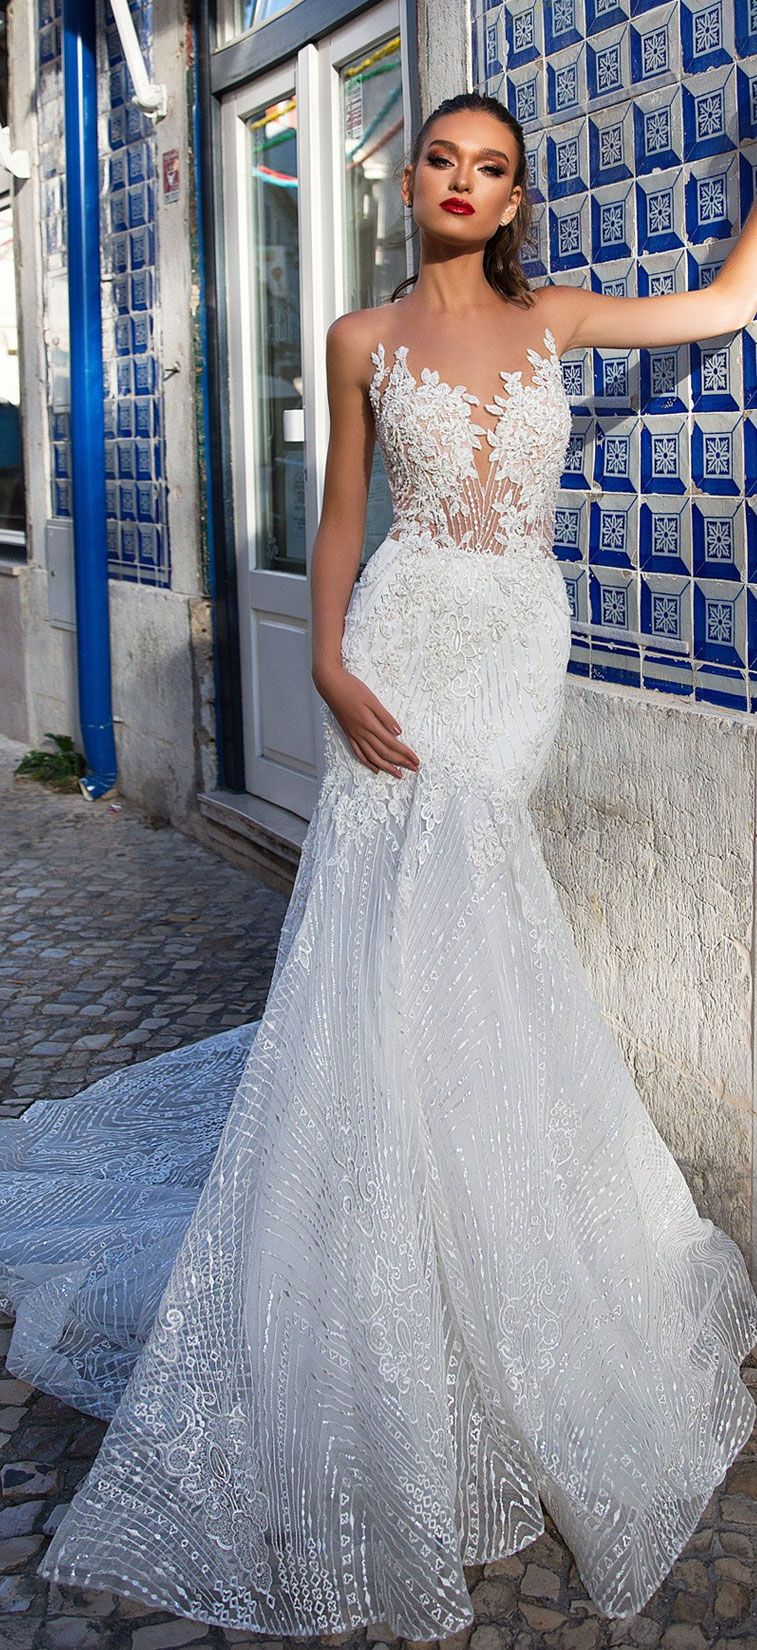 Illusion neckline heavy embellishment mermaid wedding dress : Milla Nova wedding dress #weddingdress #weddinggown #wedding #bridedress